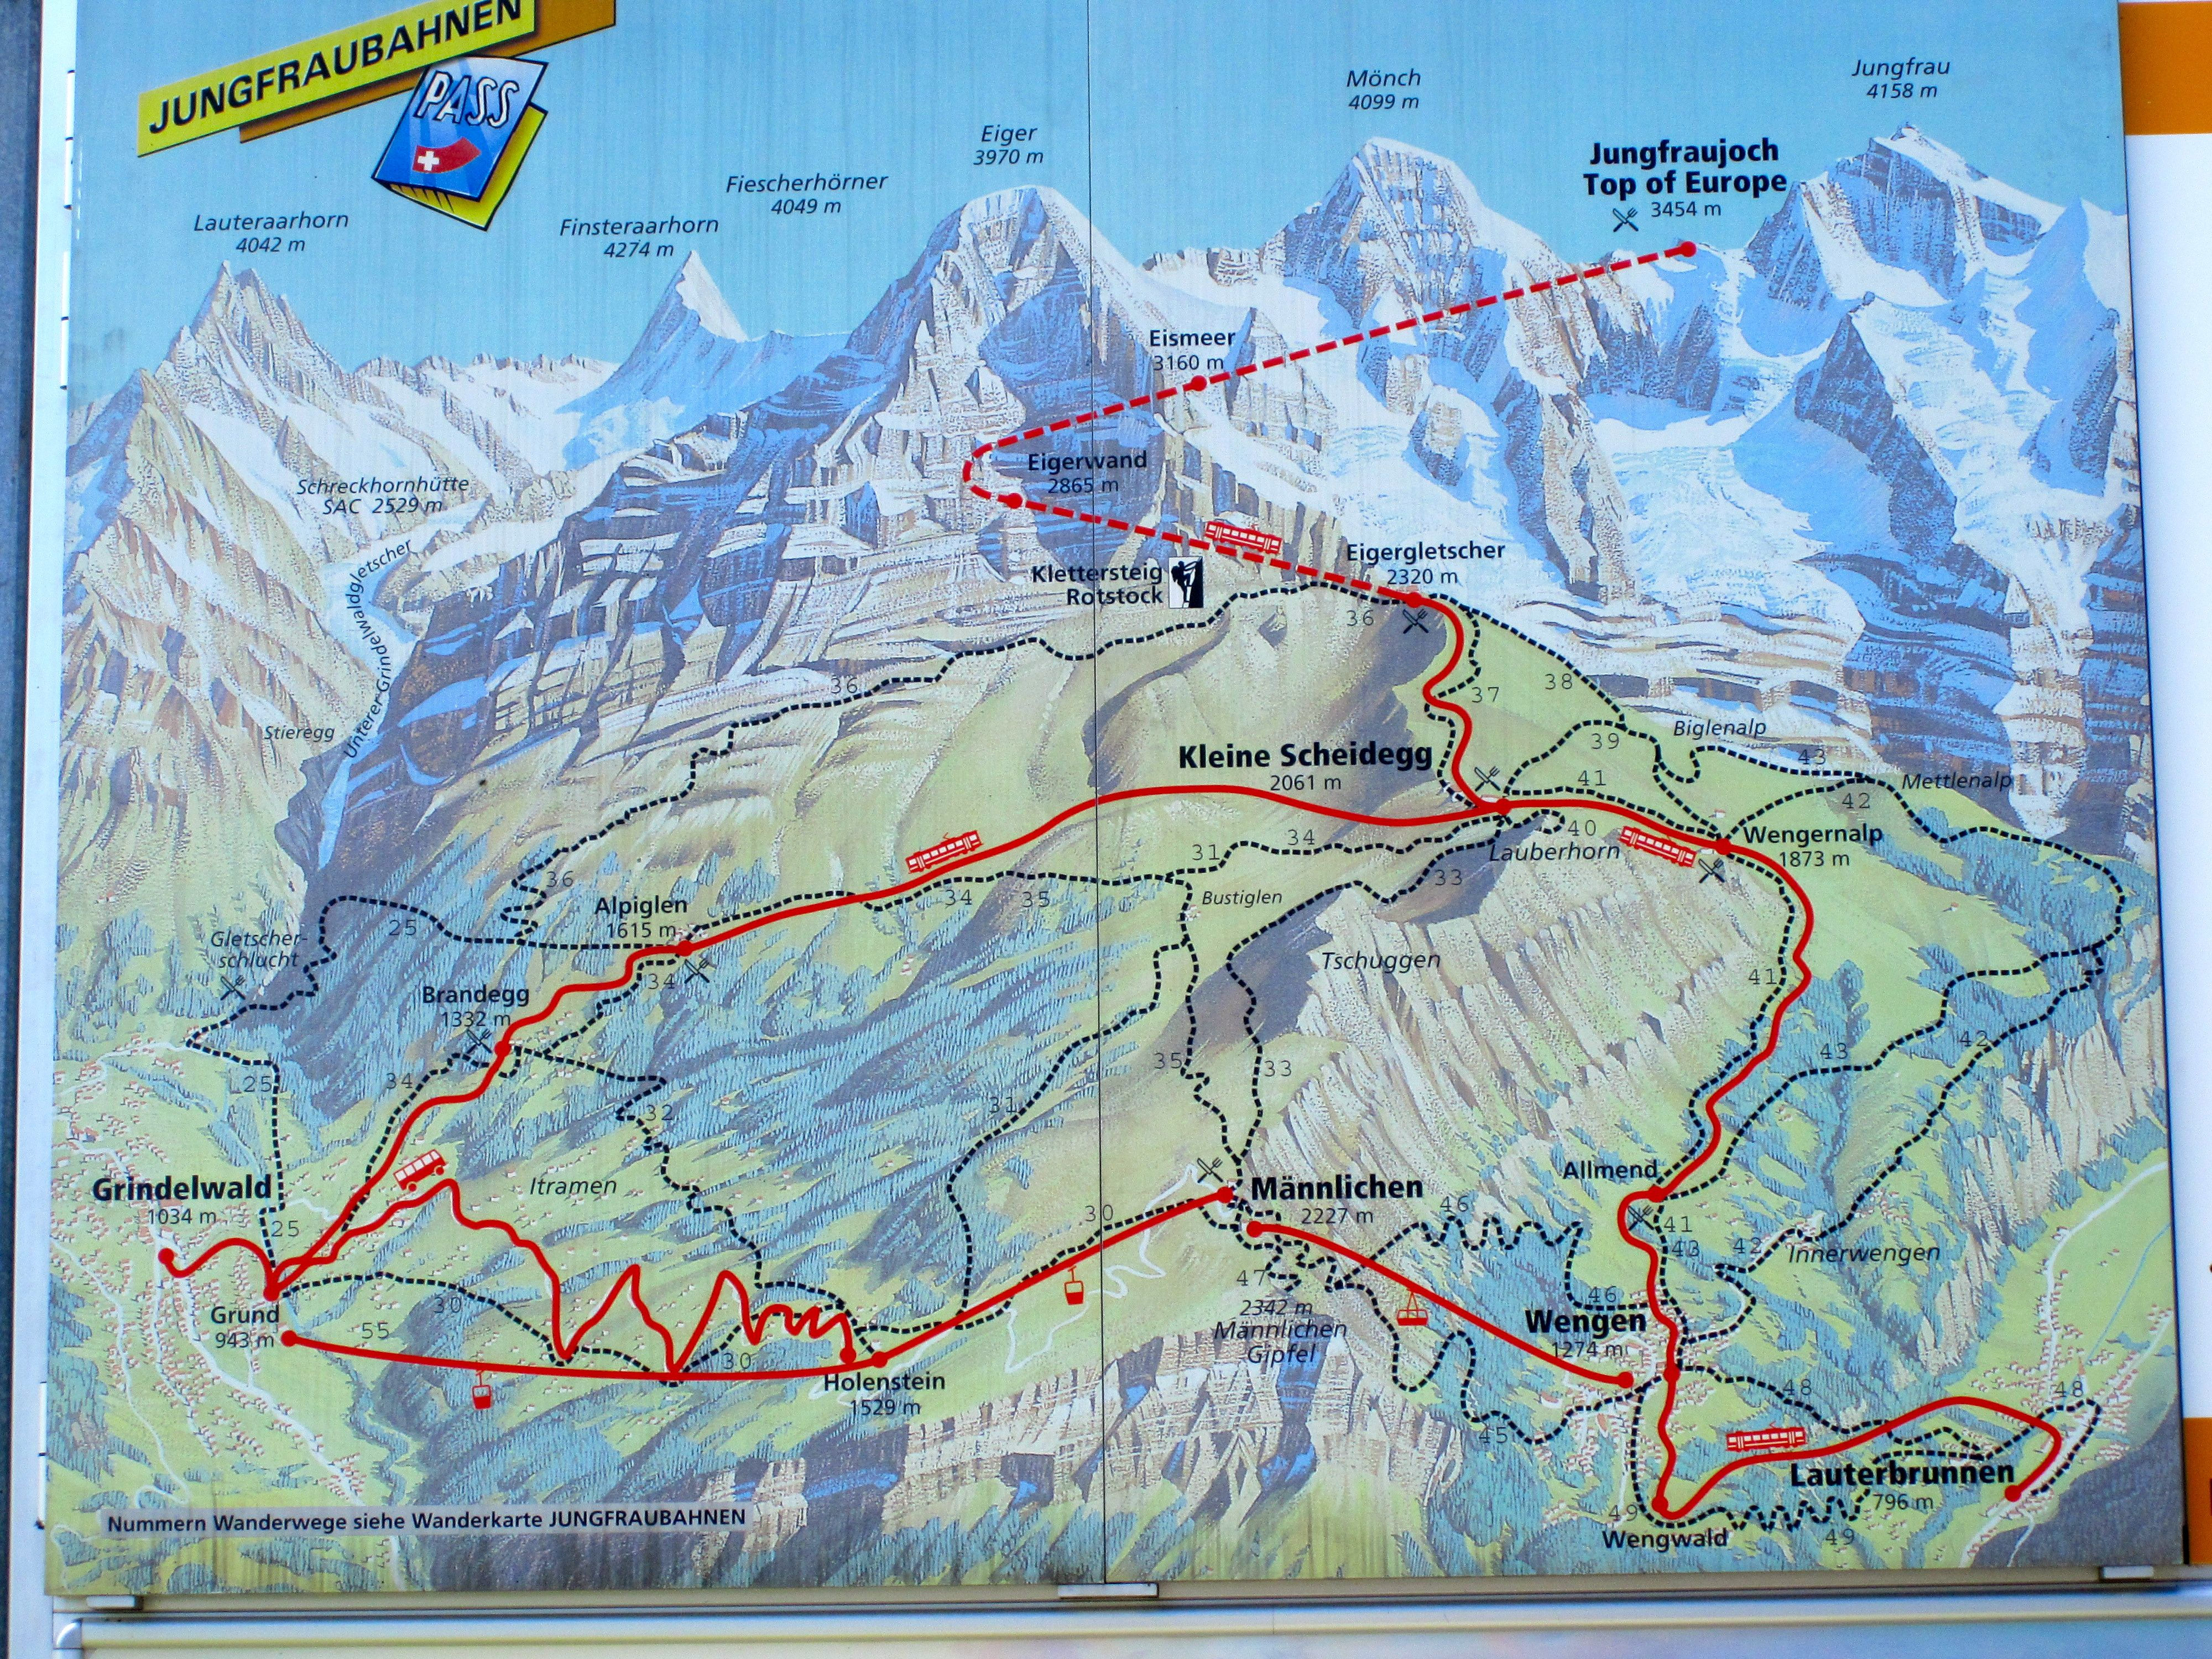 rail map to jungfraujoch TravelSWITZERLANDplaces Ive visited